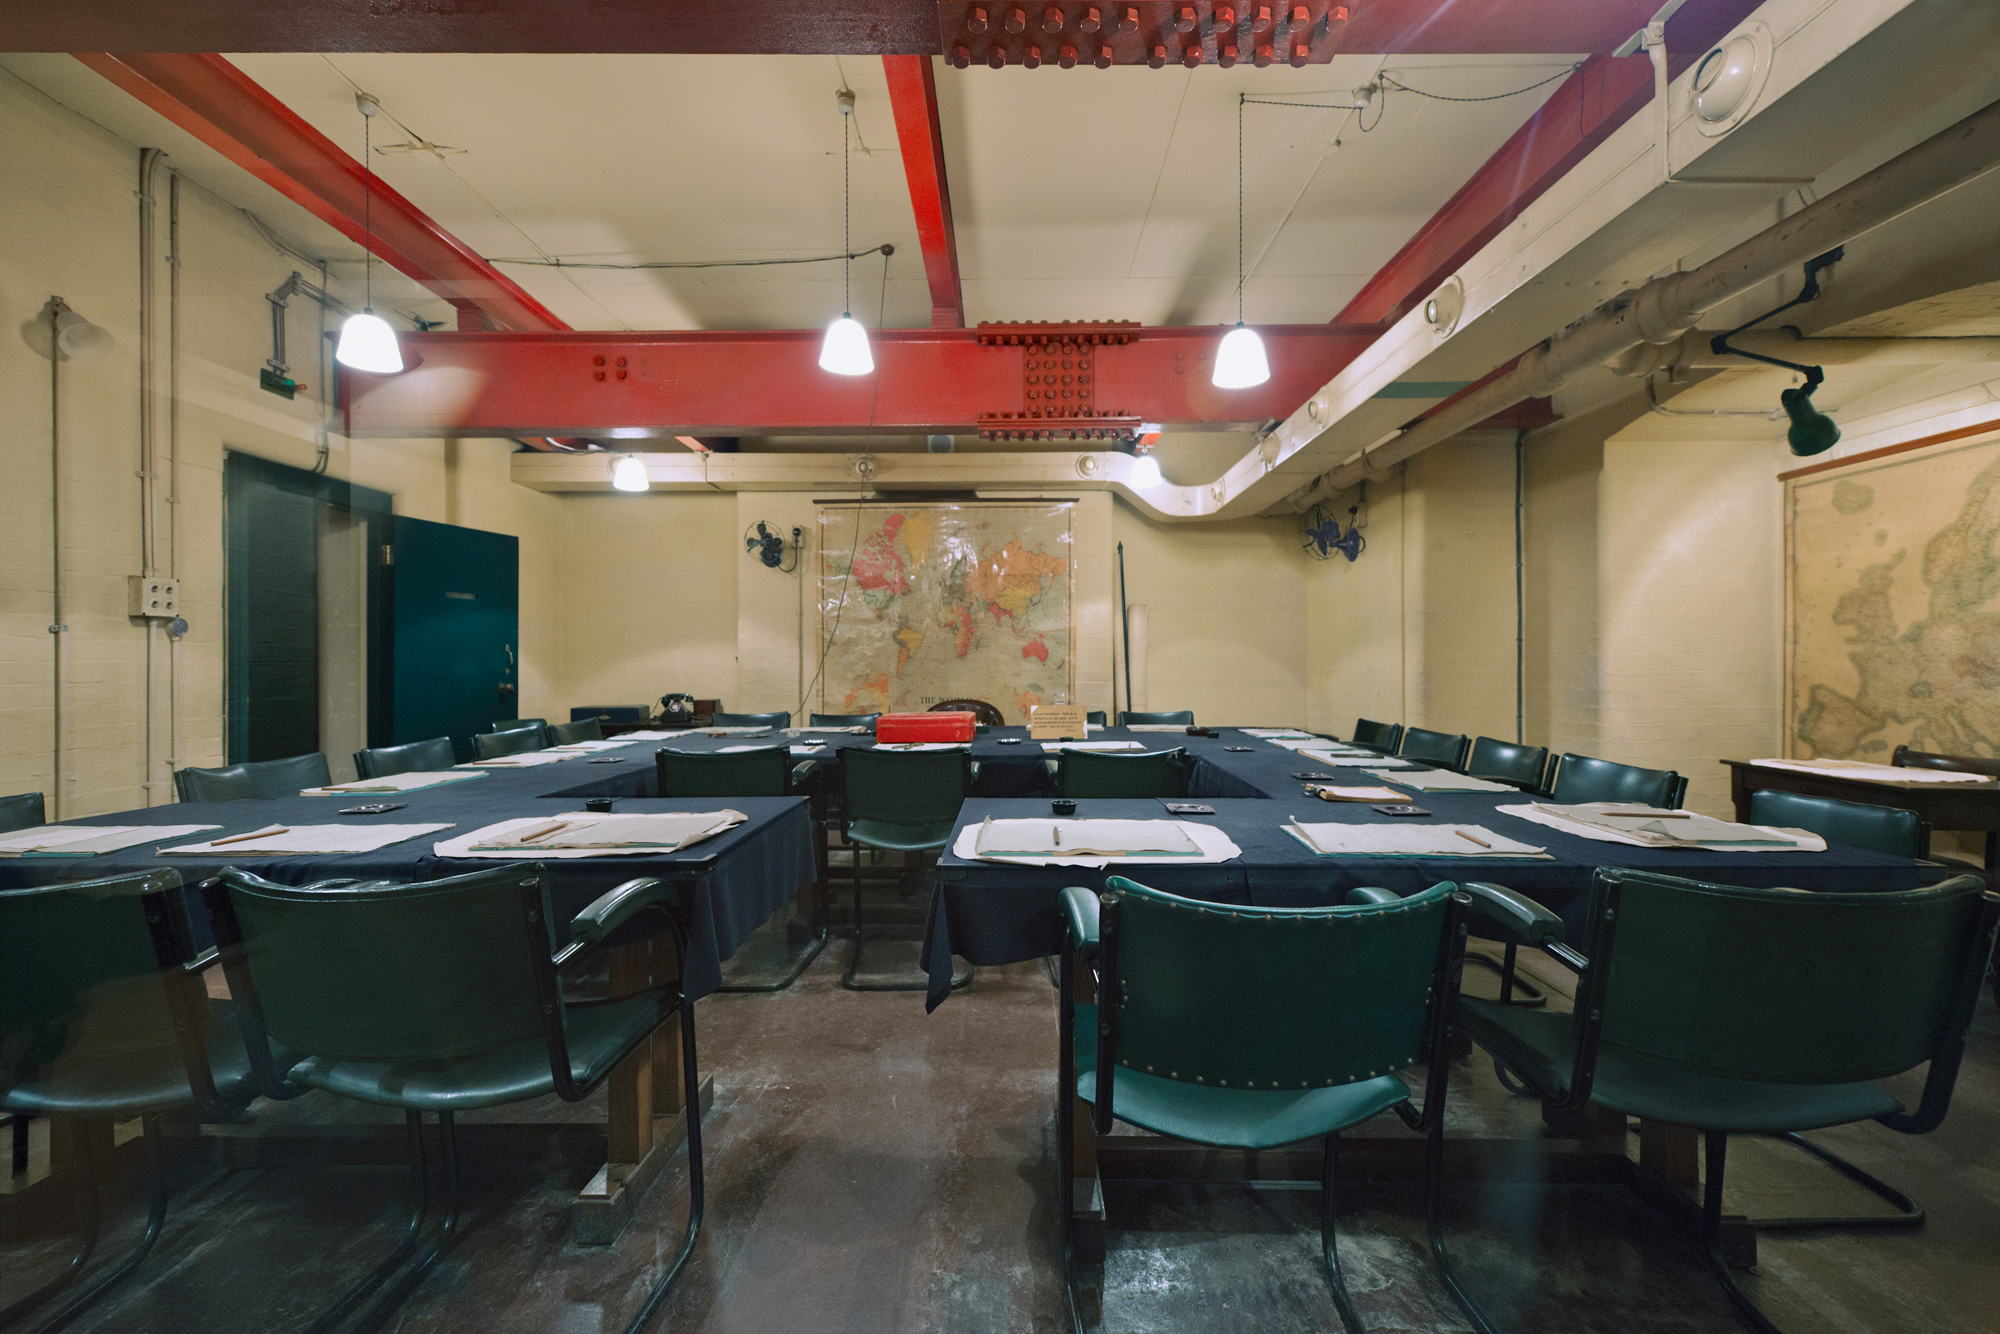 Super Charting Churchill The Cabinet War Rooms Clive Steps Download Free Architecture Designs Embacsunscenecom